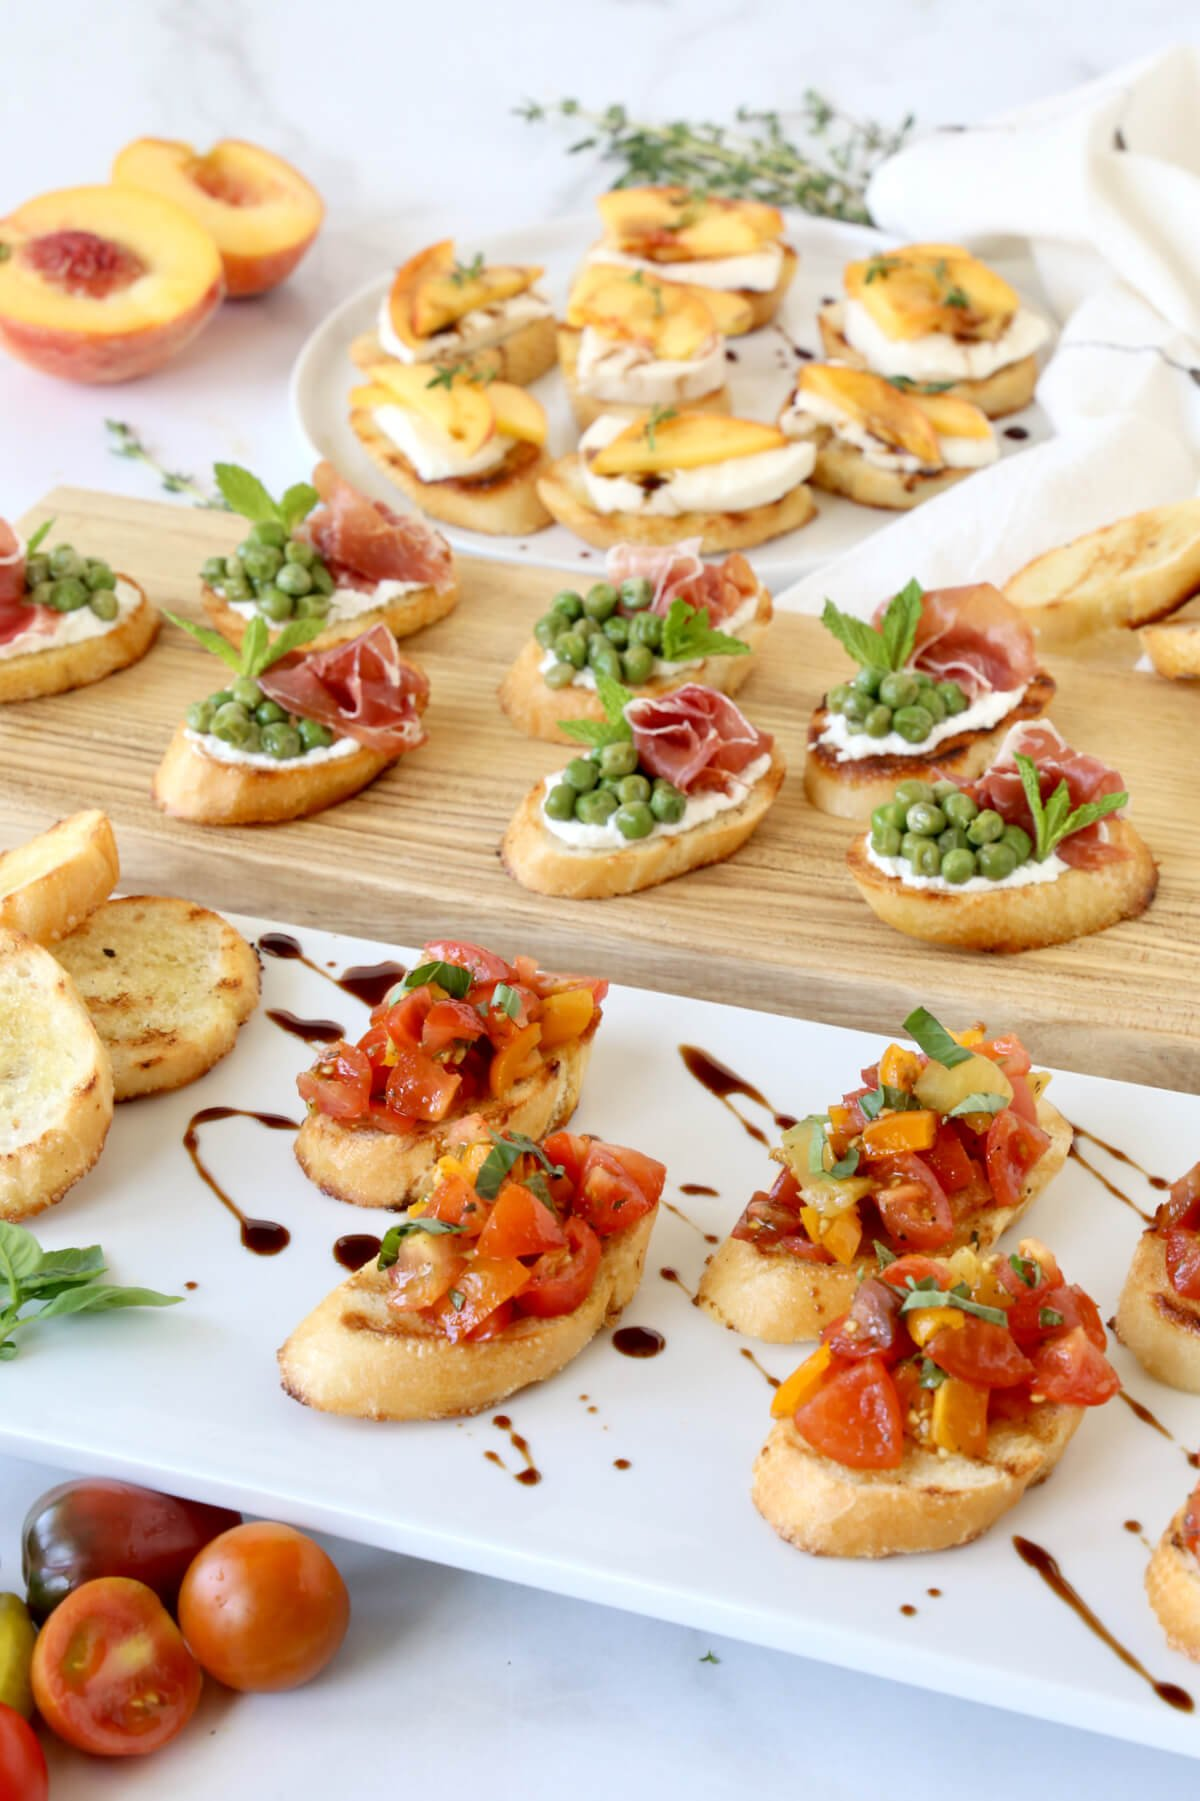 Three platter of assorted bruschetta, toasted bread with tomatoes, peas, prosciutto and peaches.